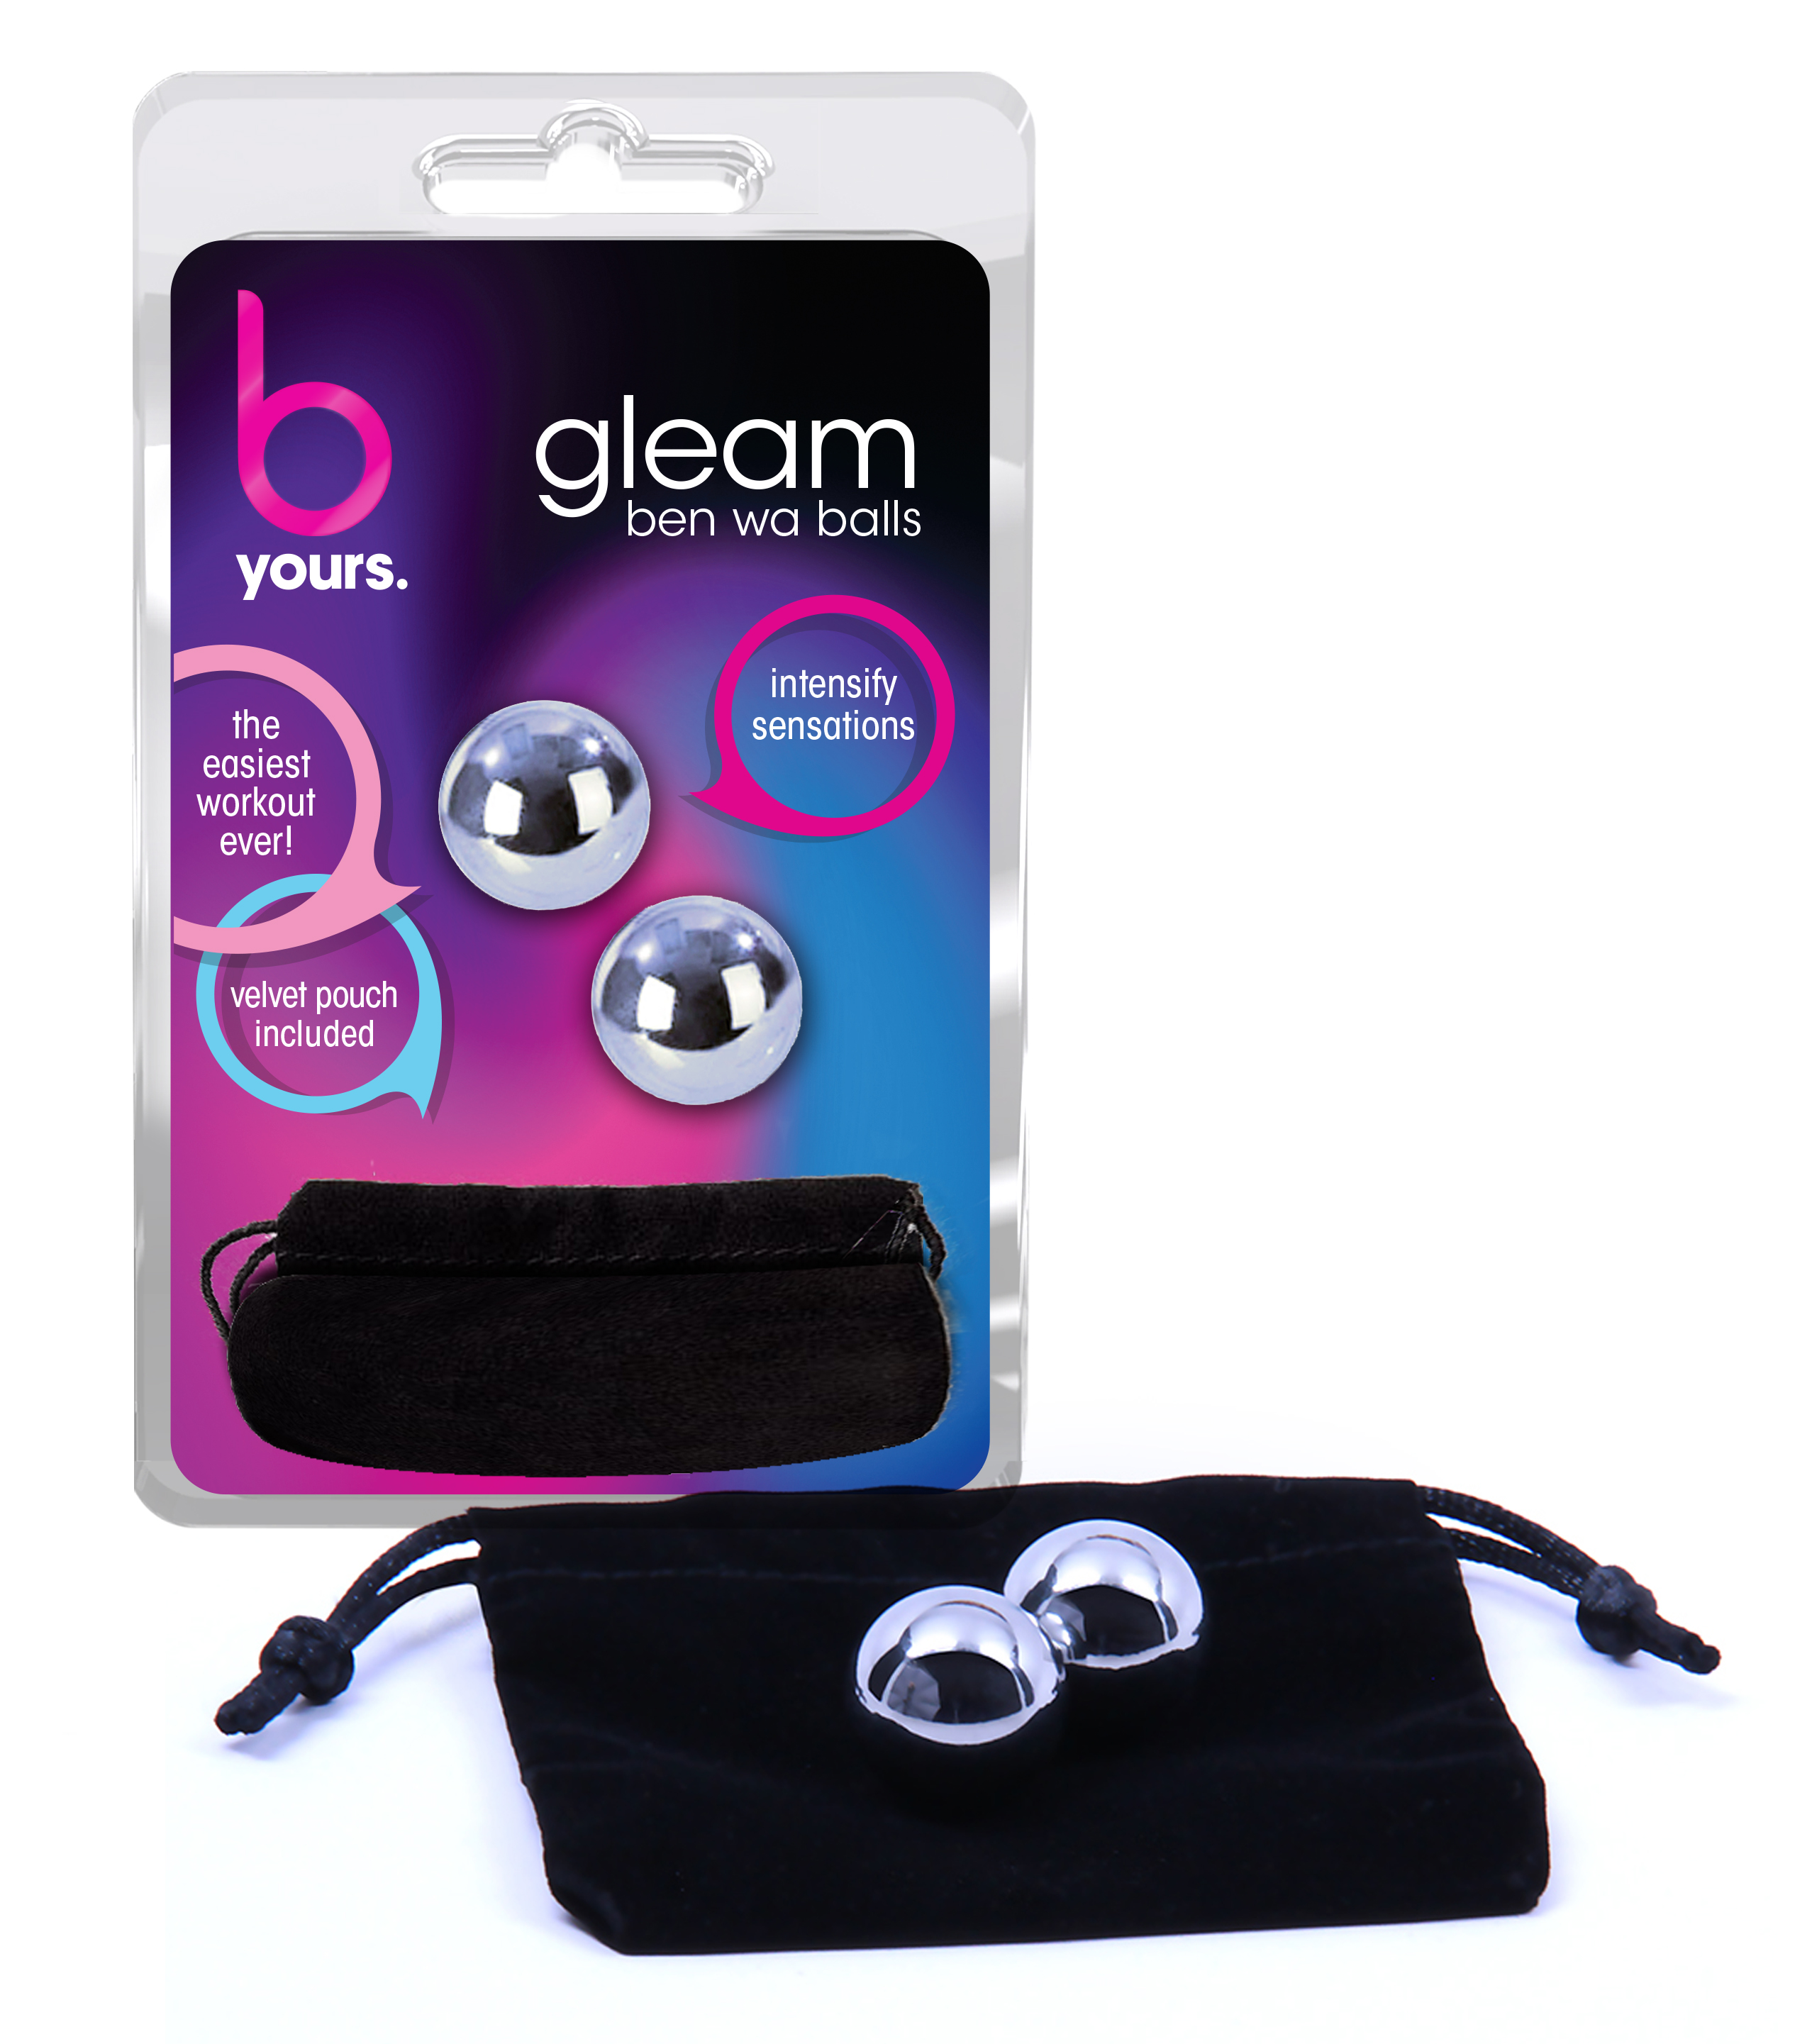 B Yours -  Gleam Stainless Steel Kegel Balls